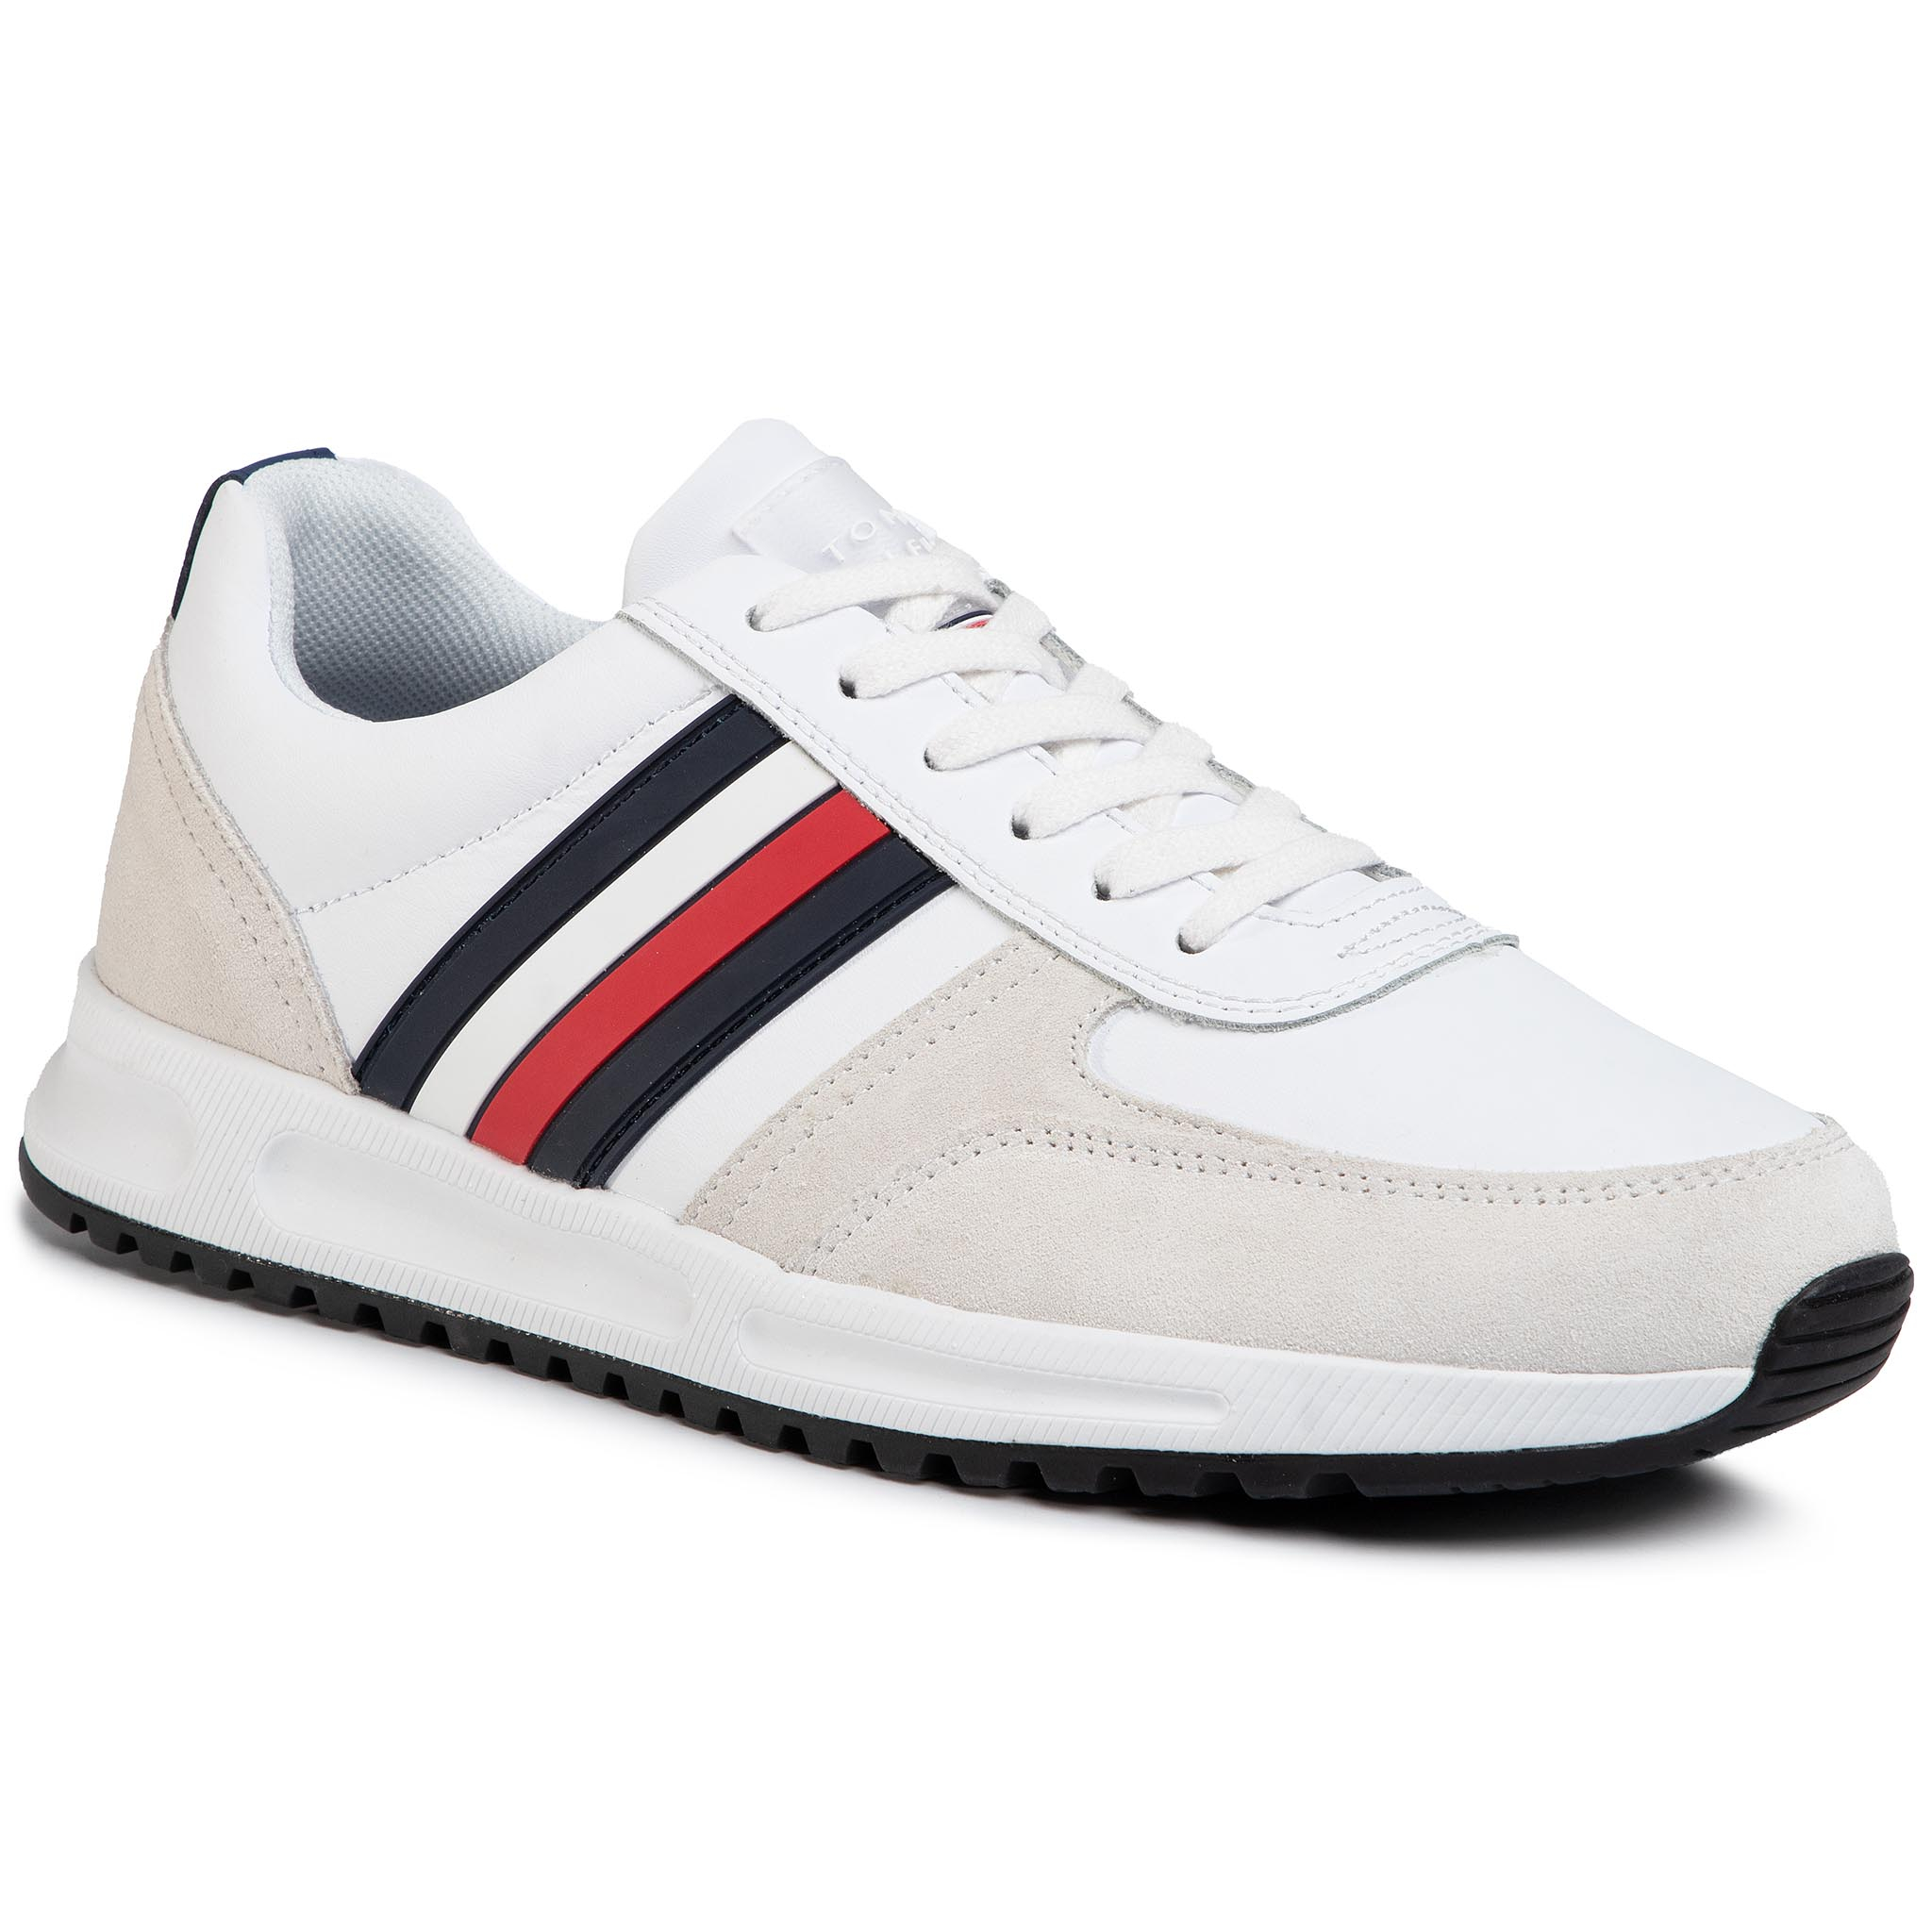 Sneakers Tommy Hilfiger - Modern Corporate Leather Runner Fm0fm02662 White Ybs imagine